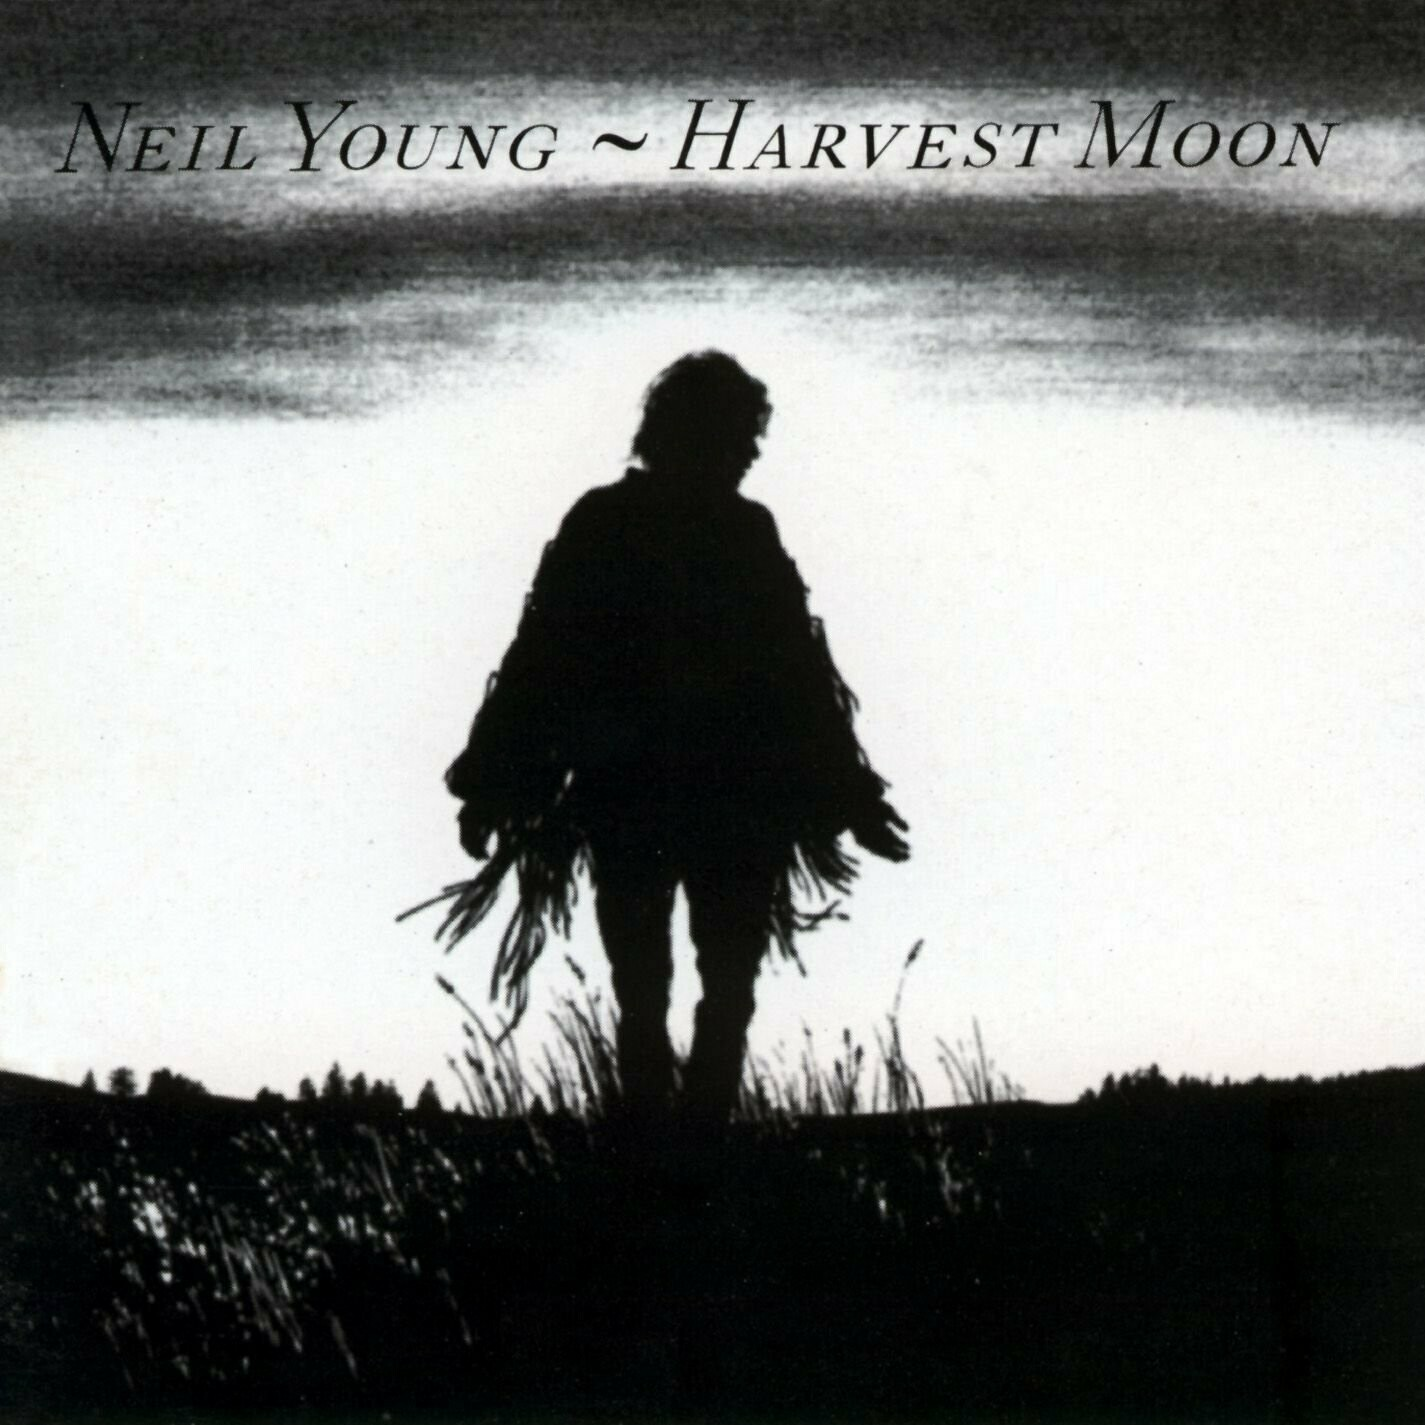 """Neil Young """"Harvest Moon"""""""